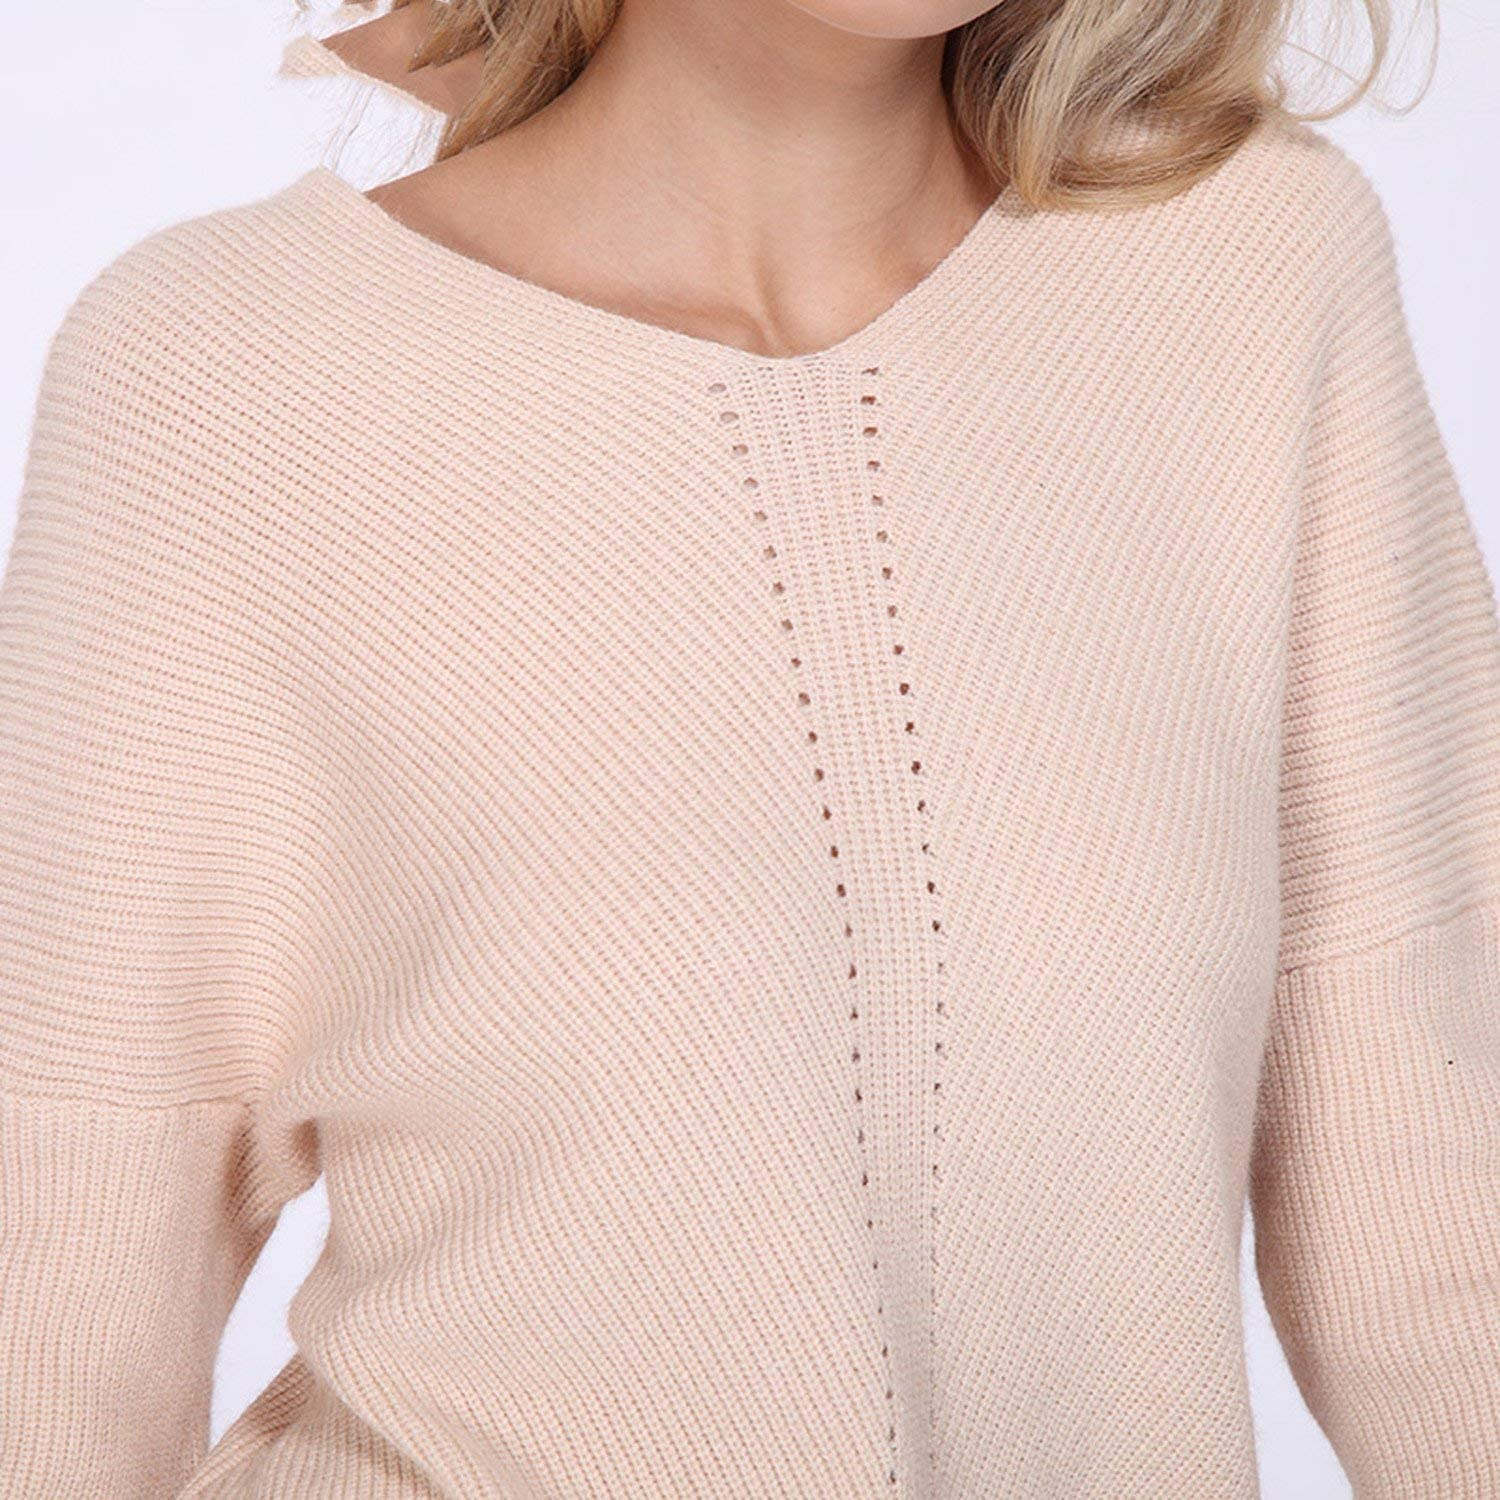 Autumn Winter Knit Pullovers Women Long Sleeve Basic Cashmere Sweater Women Pullover Knitted Casual Blue Jumper